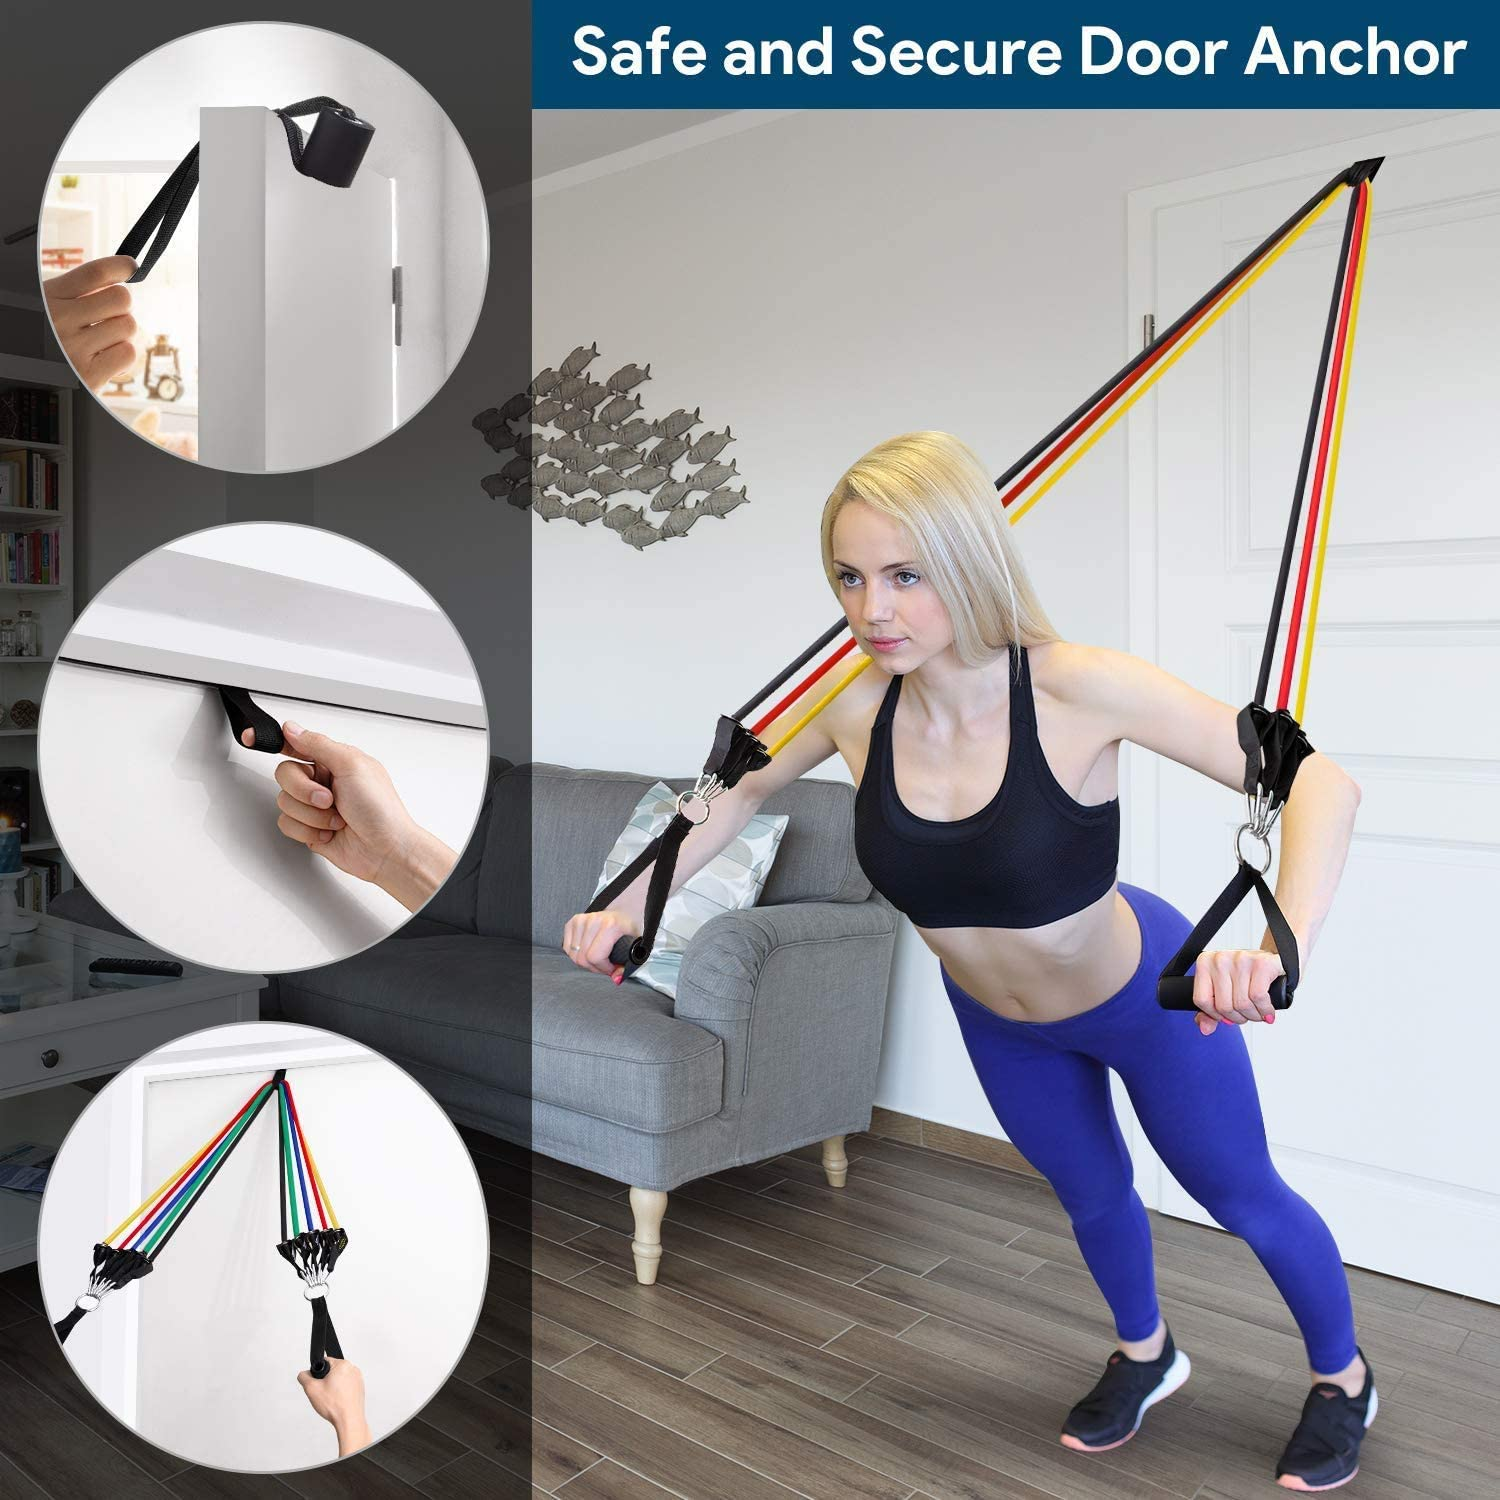 Lifestyle Fitness Resistance Band Set Premium 11pc Portable Exercise Bands with Door Anchor  Non-Slip Handles Leg and Ankle Straps  Resistance Training Physical Therapy Home Workout : Sports & Outdoors